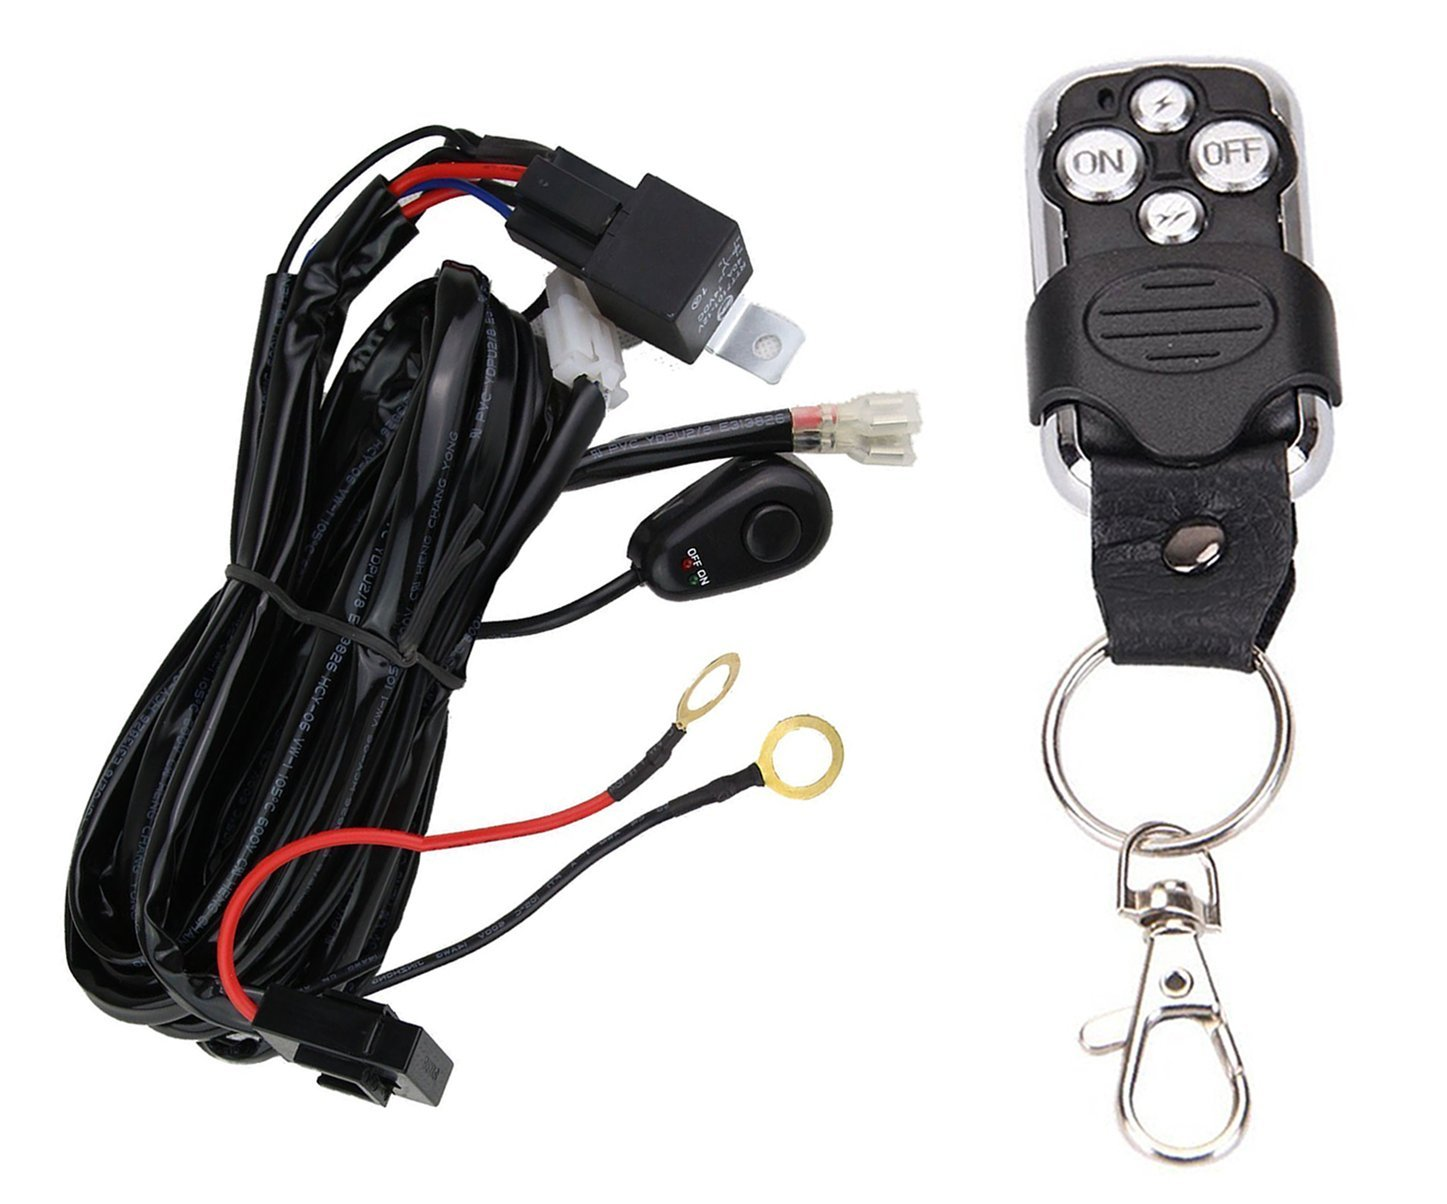 Wiring Harness For Led Light Bar With Remote Control By Glaretek One Of Several Harnesses 12v 40a Line Kit On Off Switch Relay Fog Road Work 10ft Length